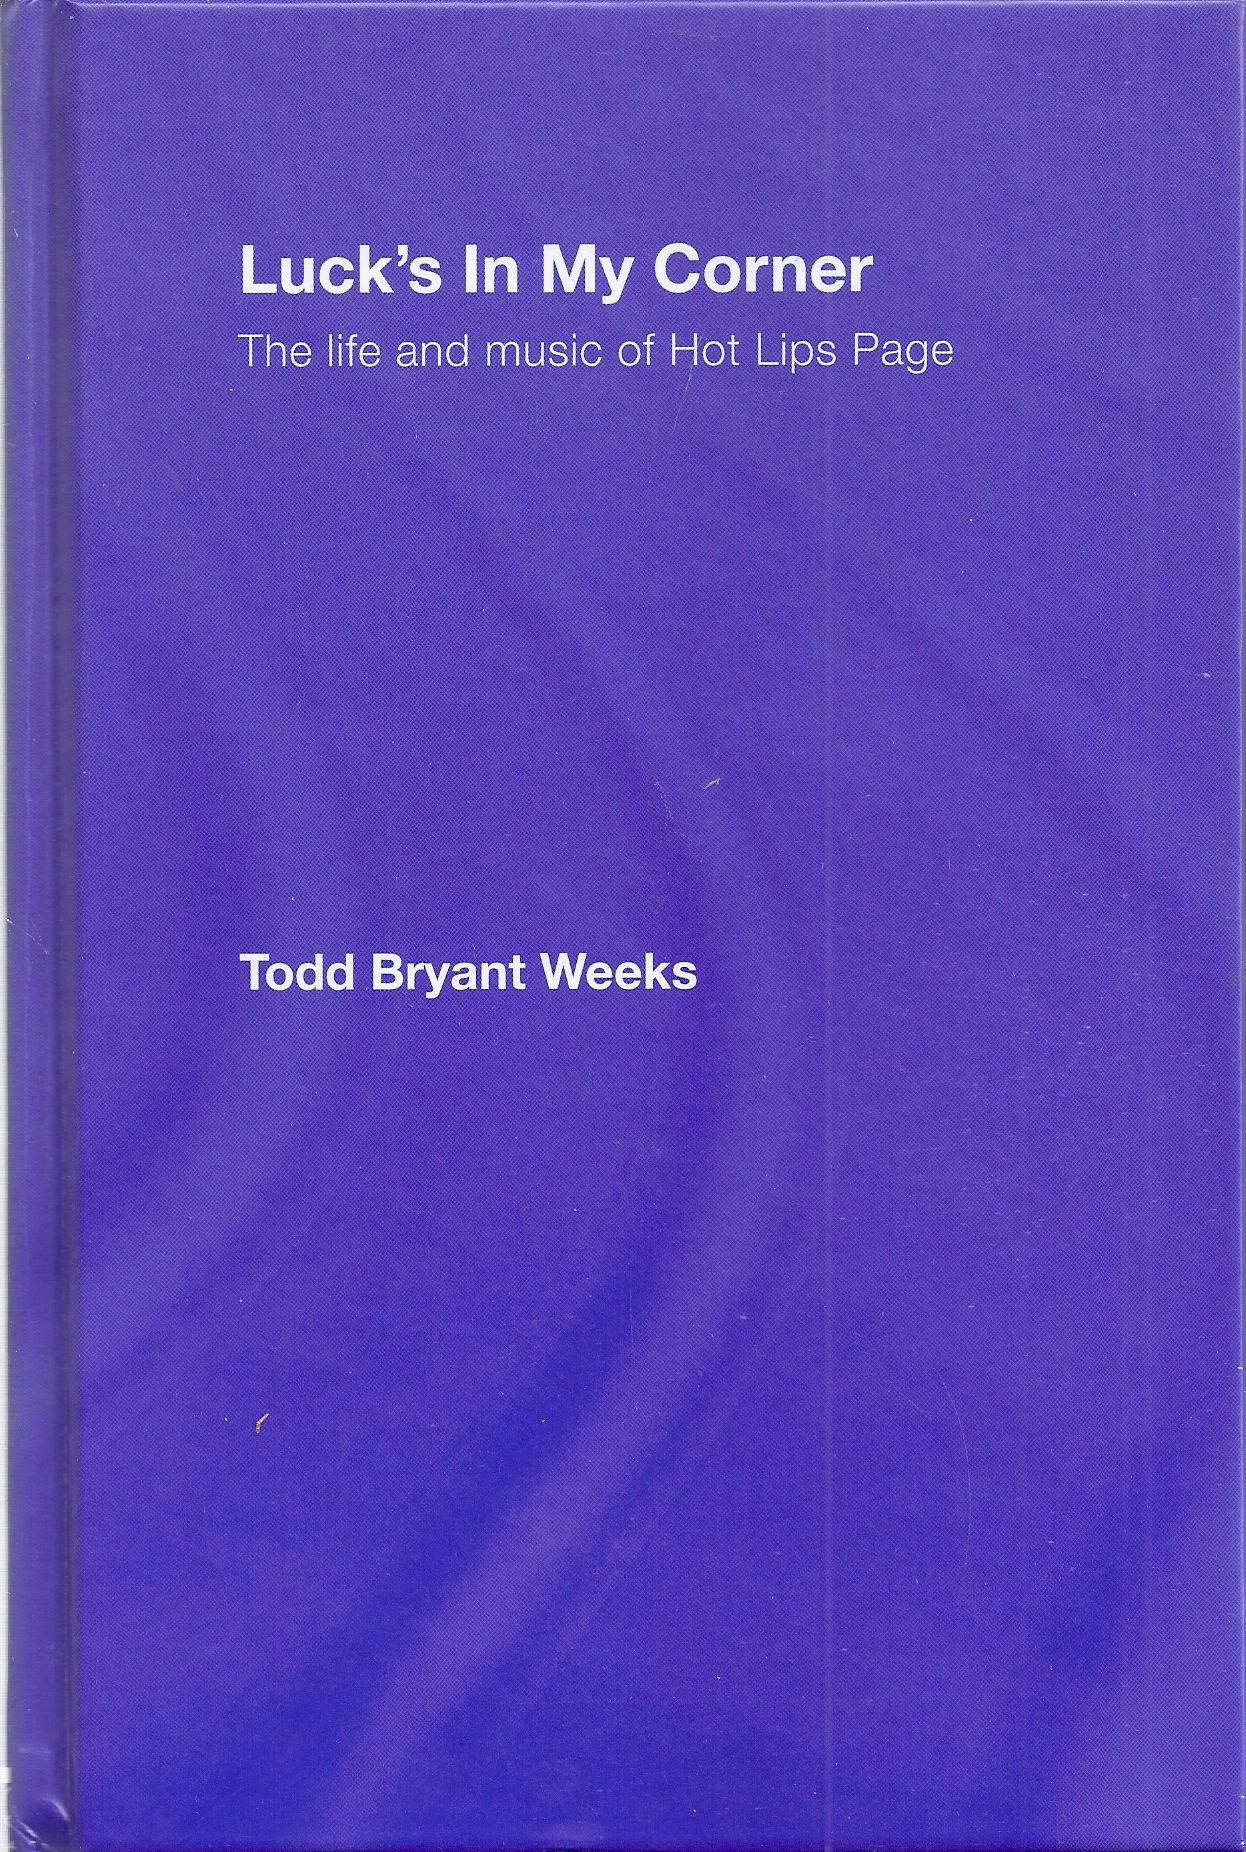 Image for Luck's In My Corner: The Life and Music of Hot Lips Page